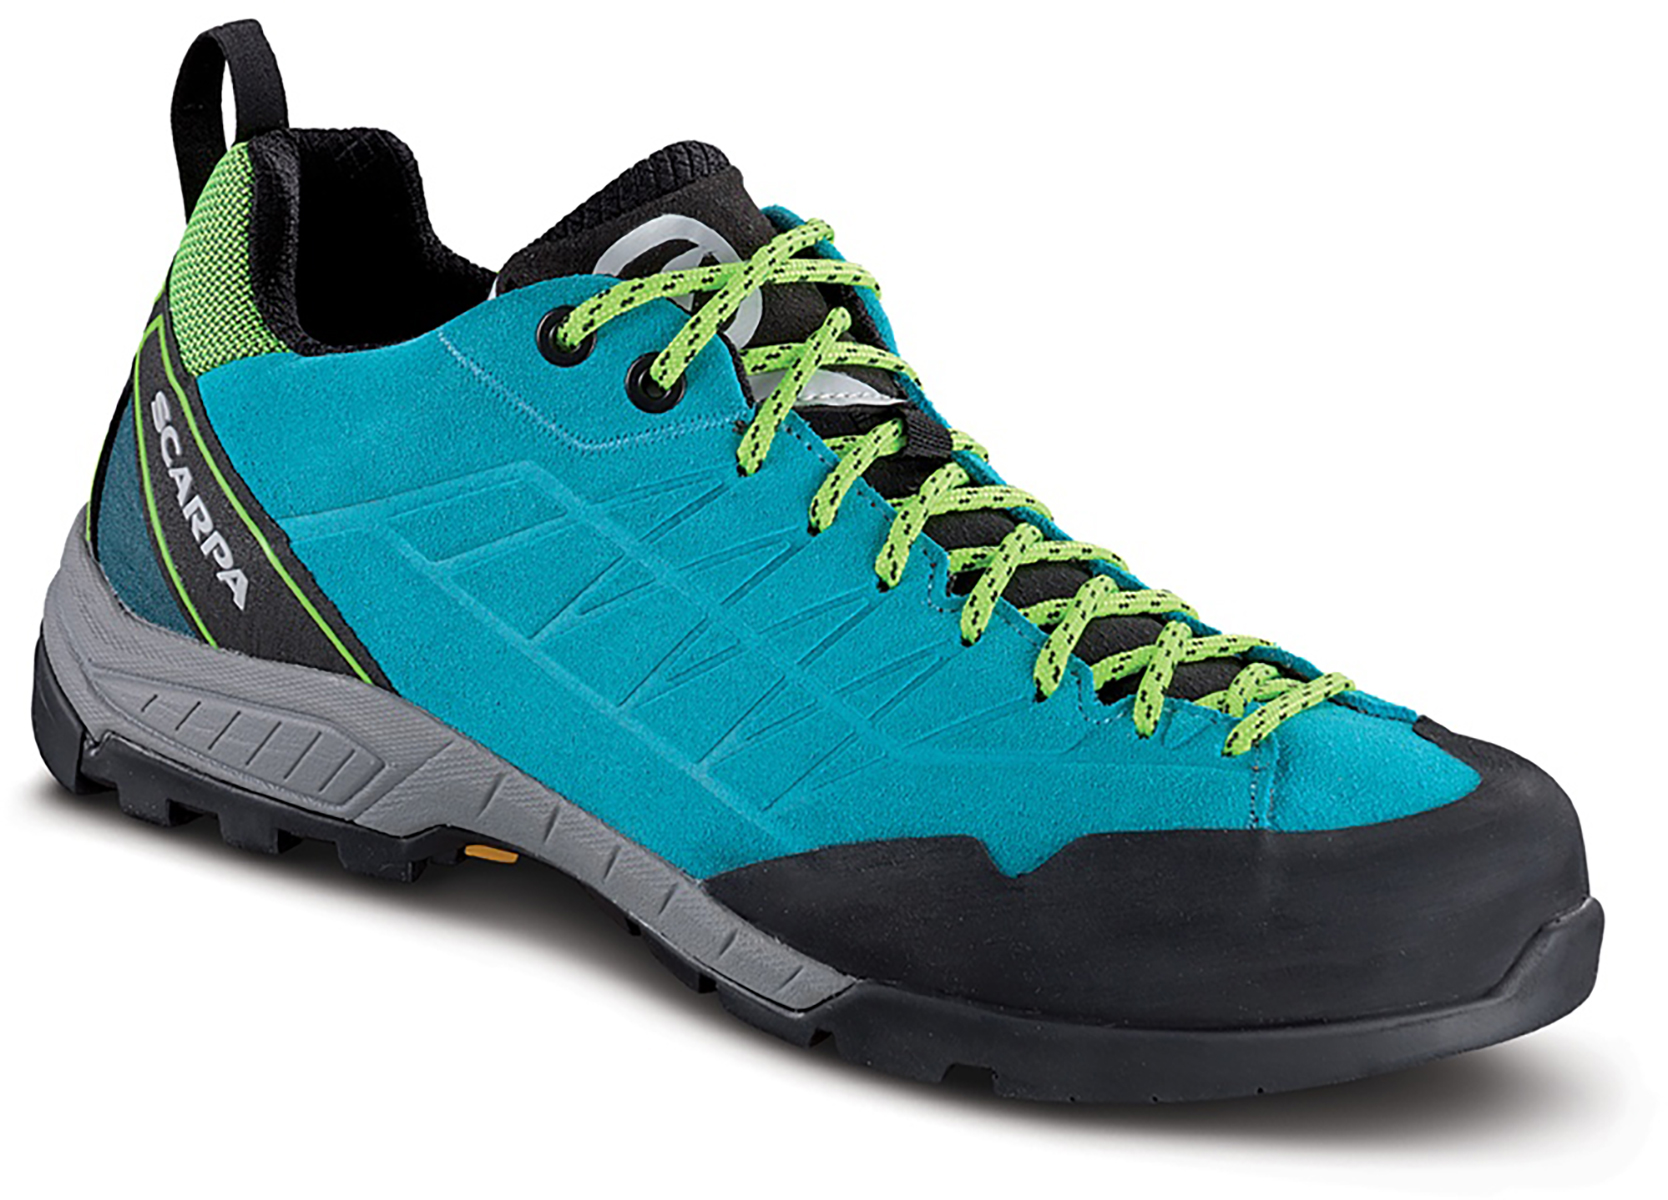 Scarpa Women's Epic Shoes | Shoes and overlays